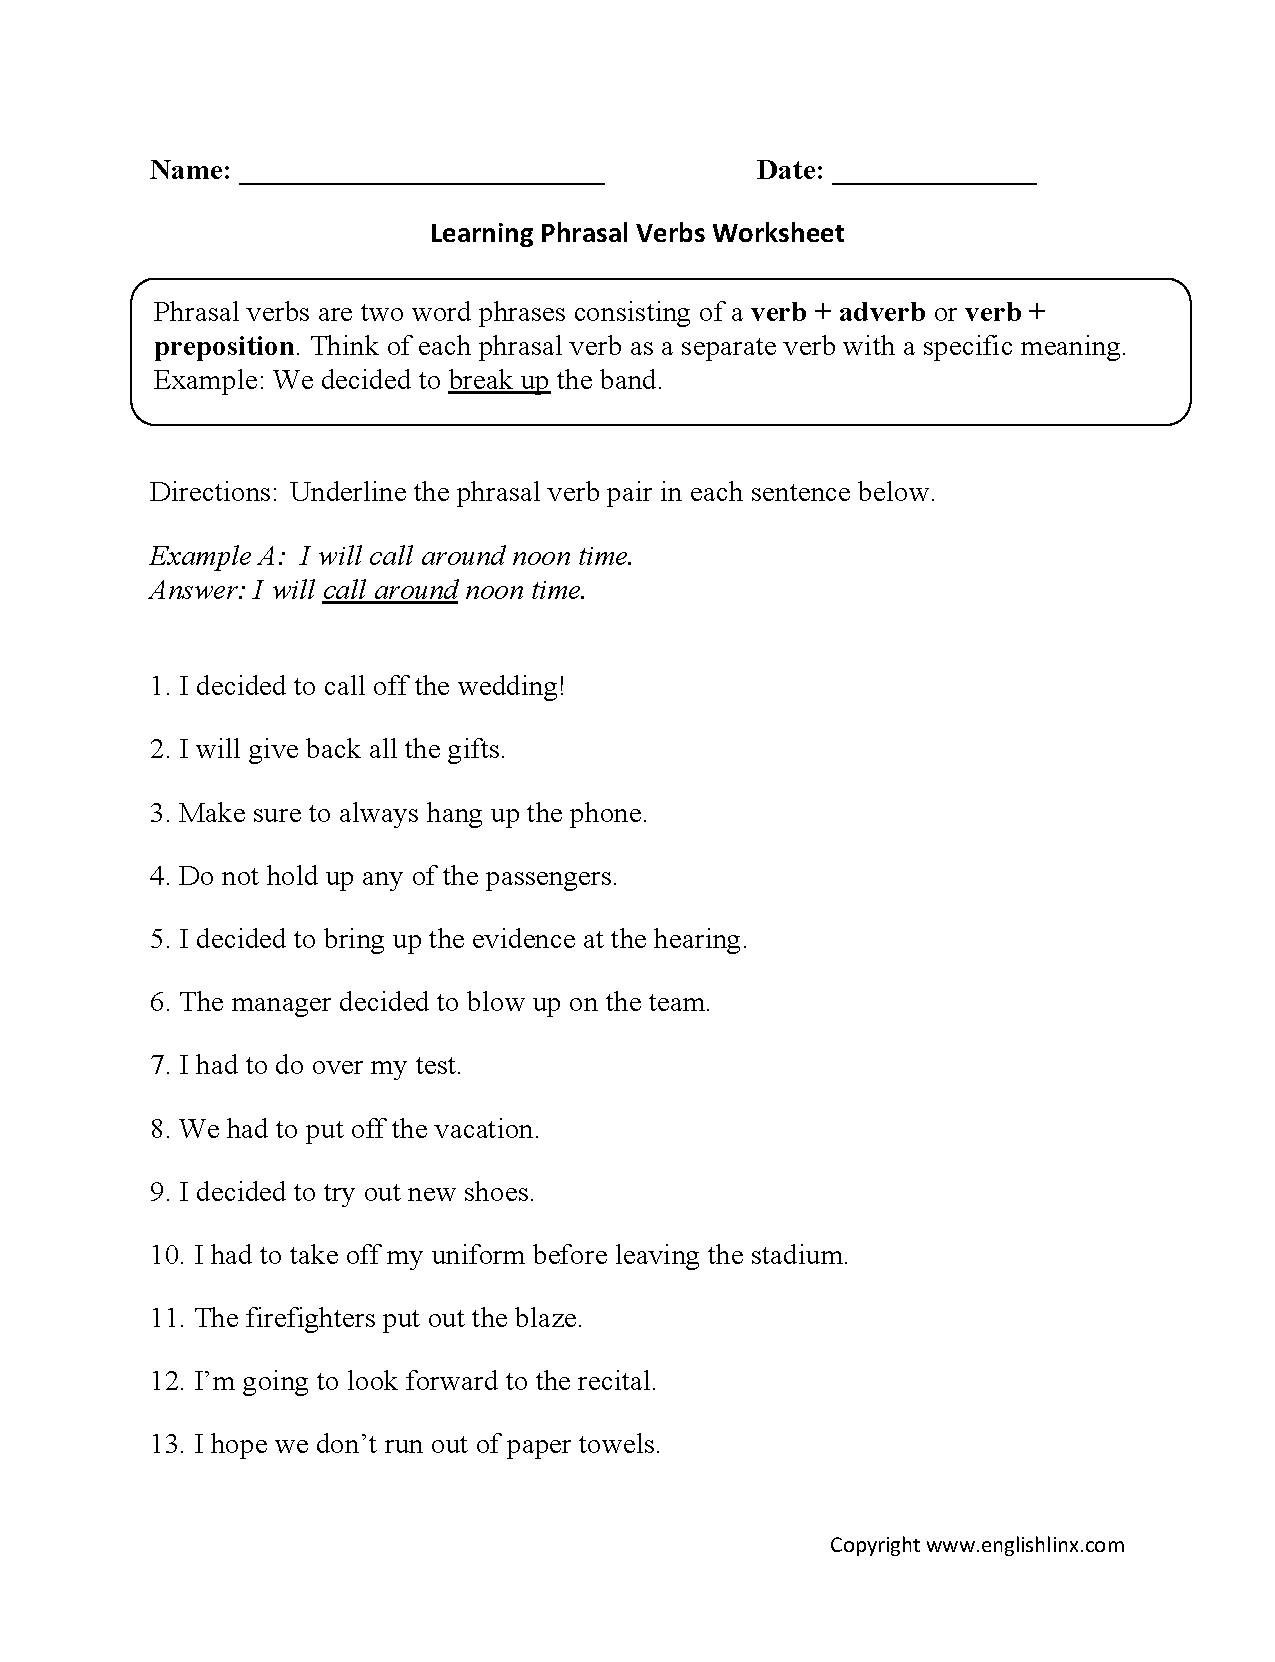 worksheet Transitive And Intransitive Verbs Worksheets phrasal verbs worksheets 7th grade english pinterest worksheets